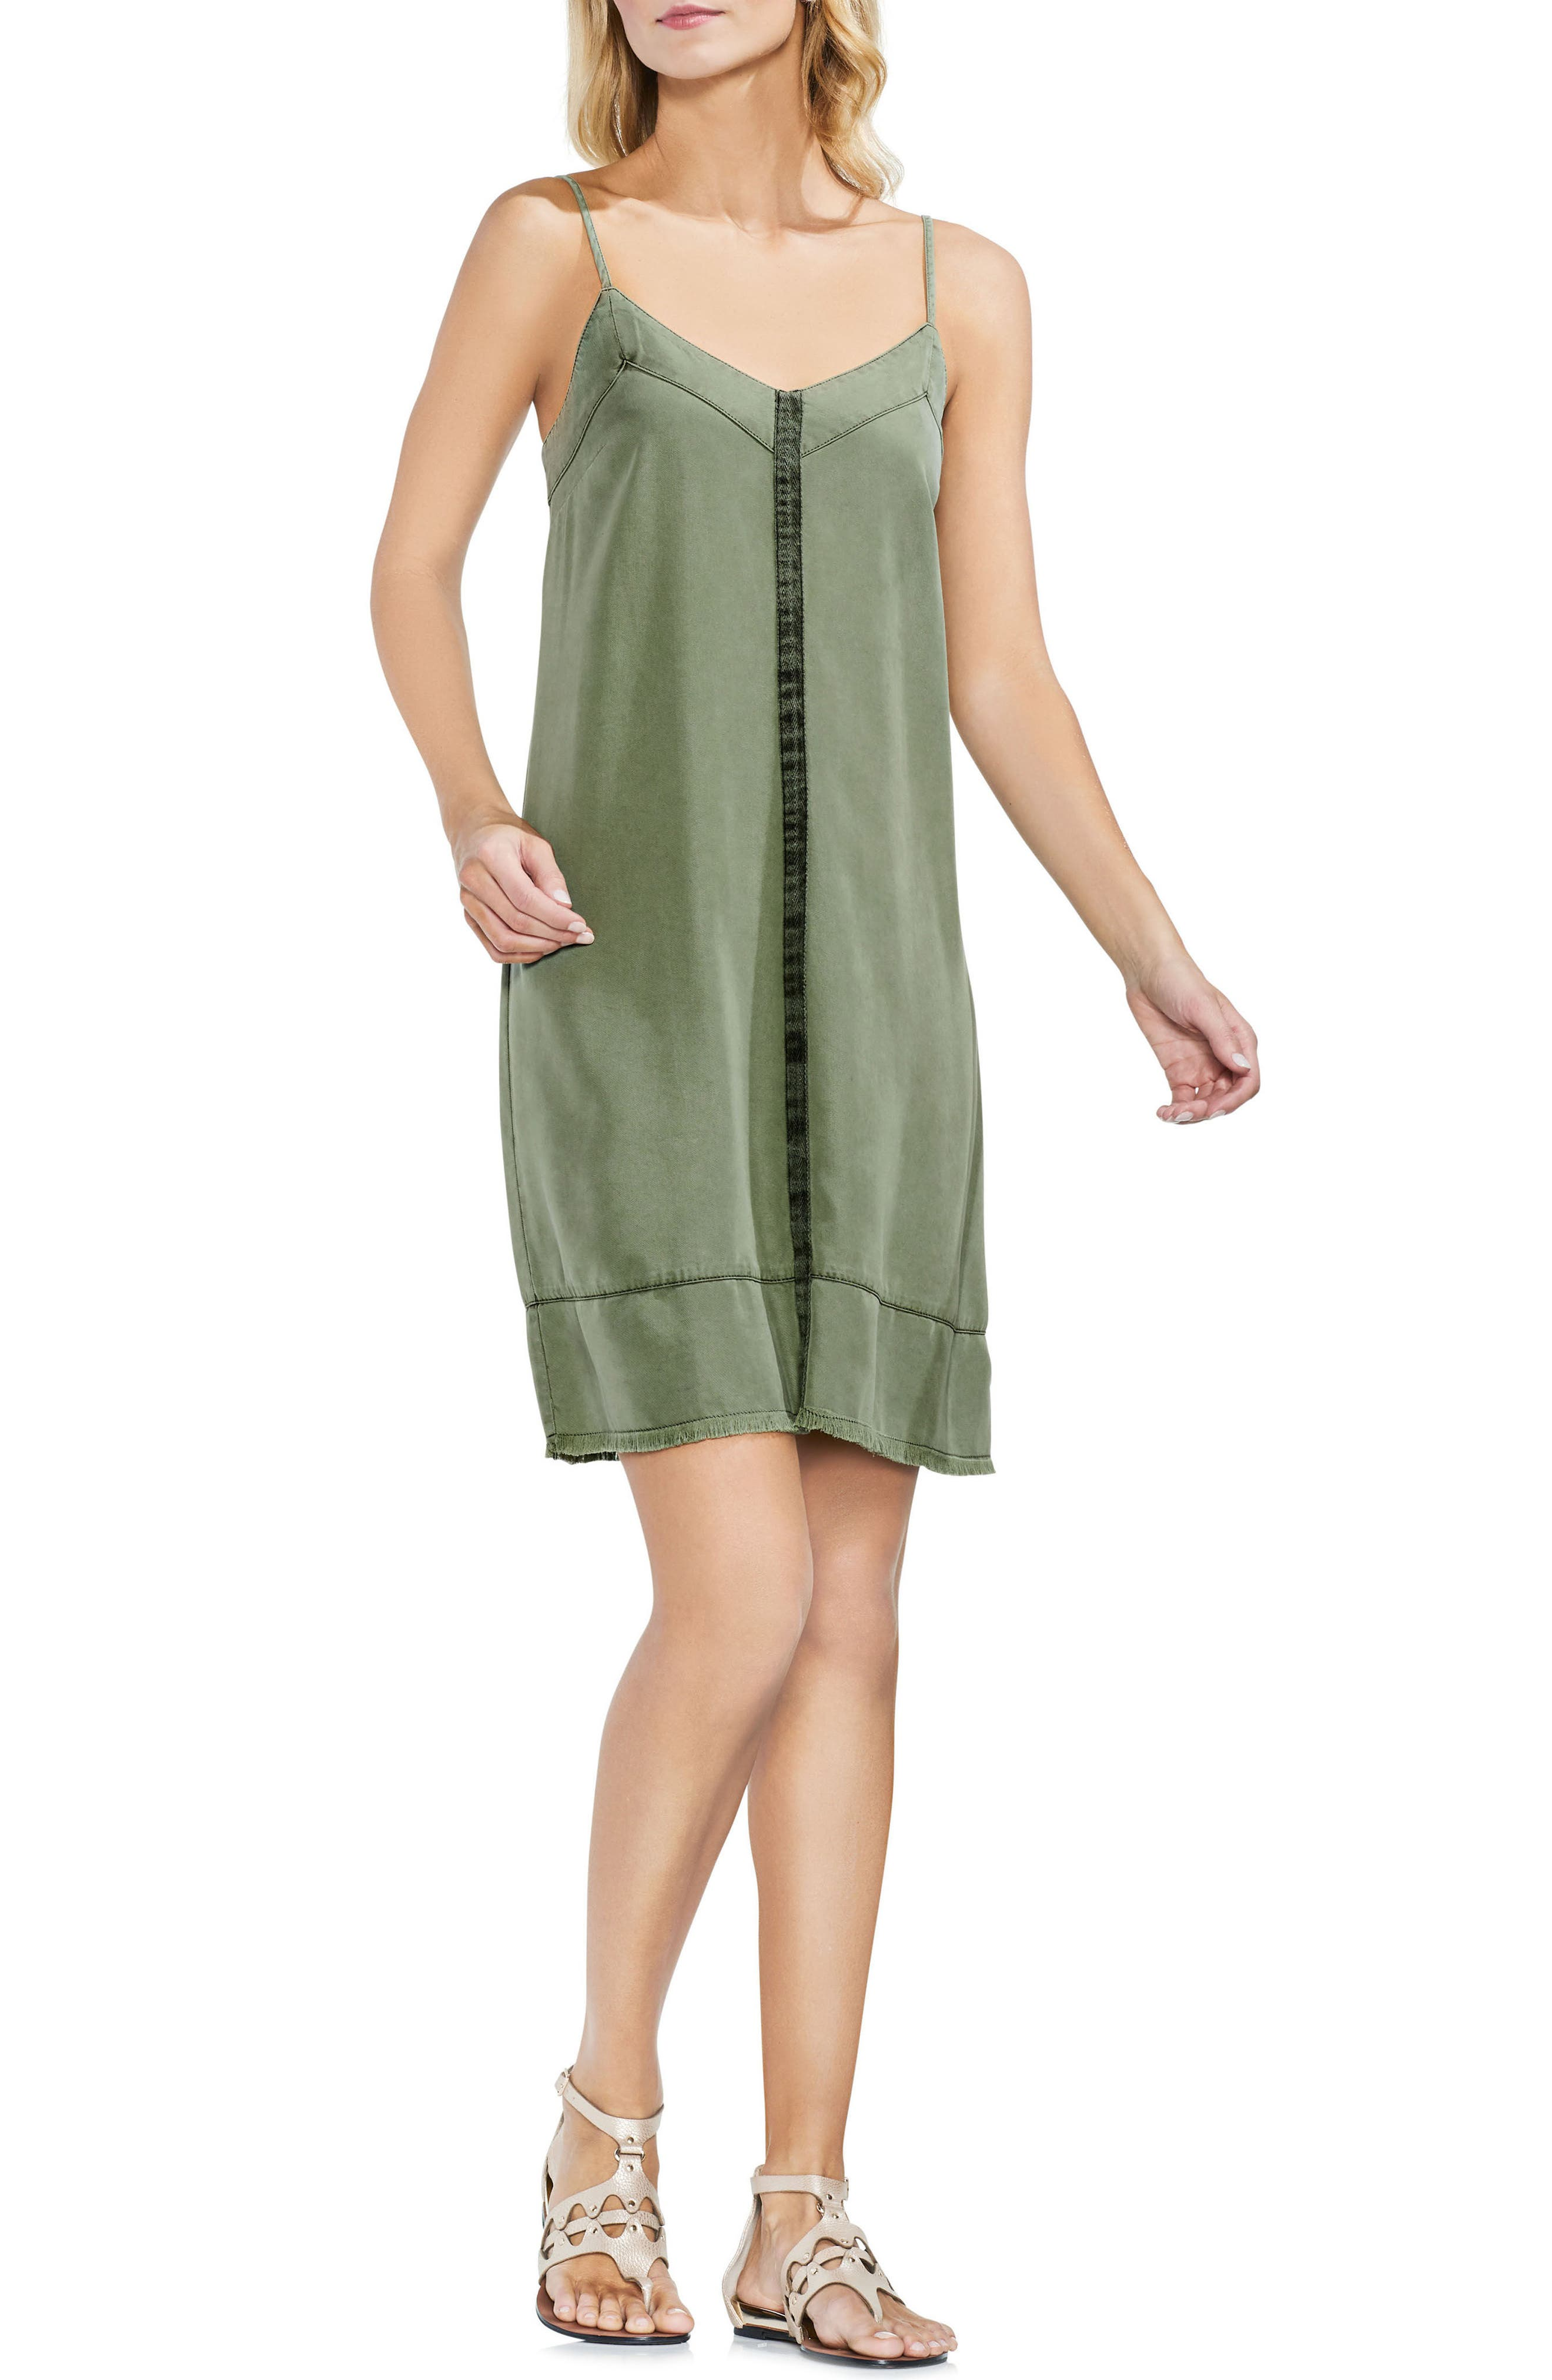 Center Seam Slip Dress,                             Main thumbnail 1, color,                             300